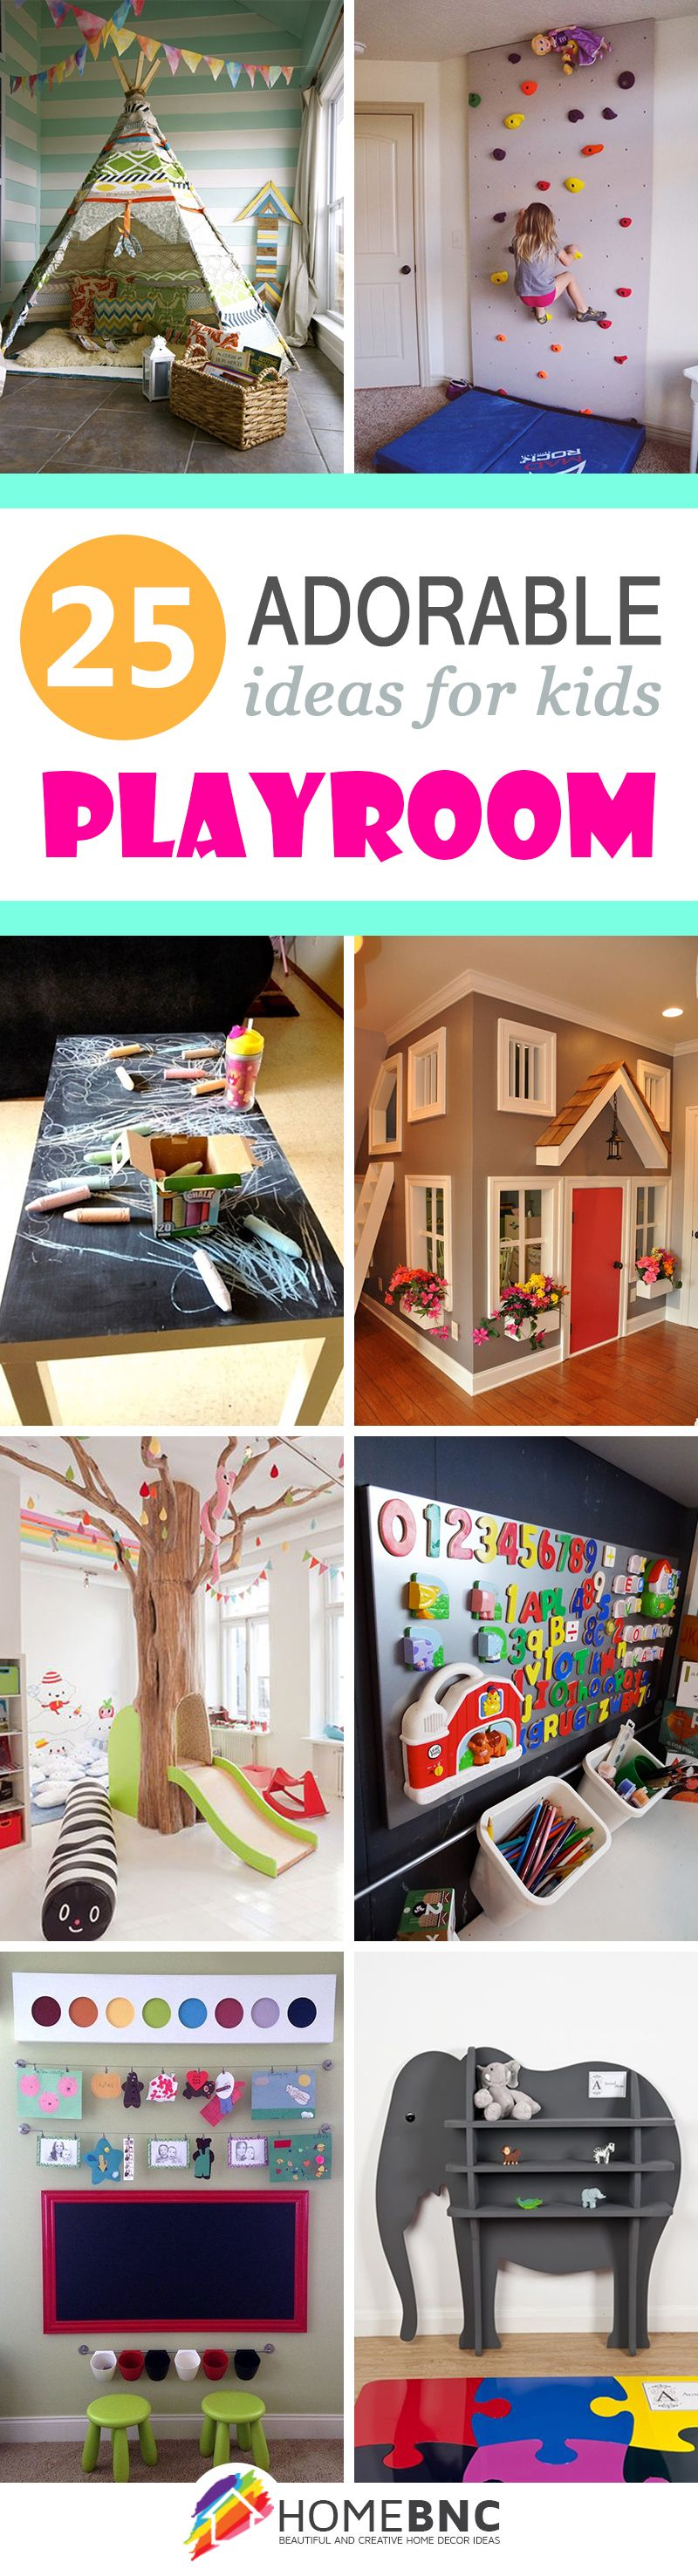 25 Adorable Kids Playroom Ideas that Every Child Will Love  아기방 및 방 꾸미기